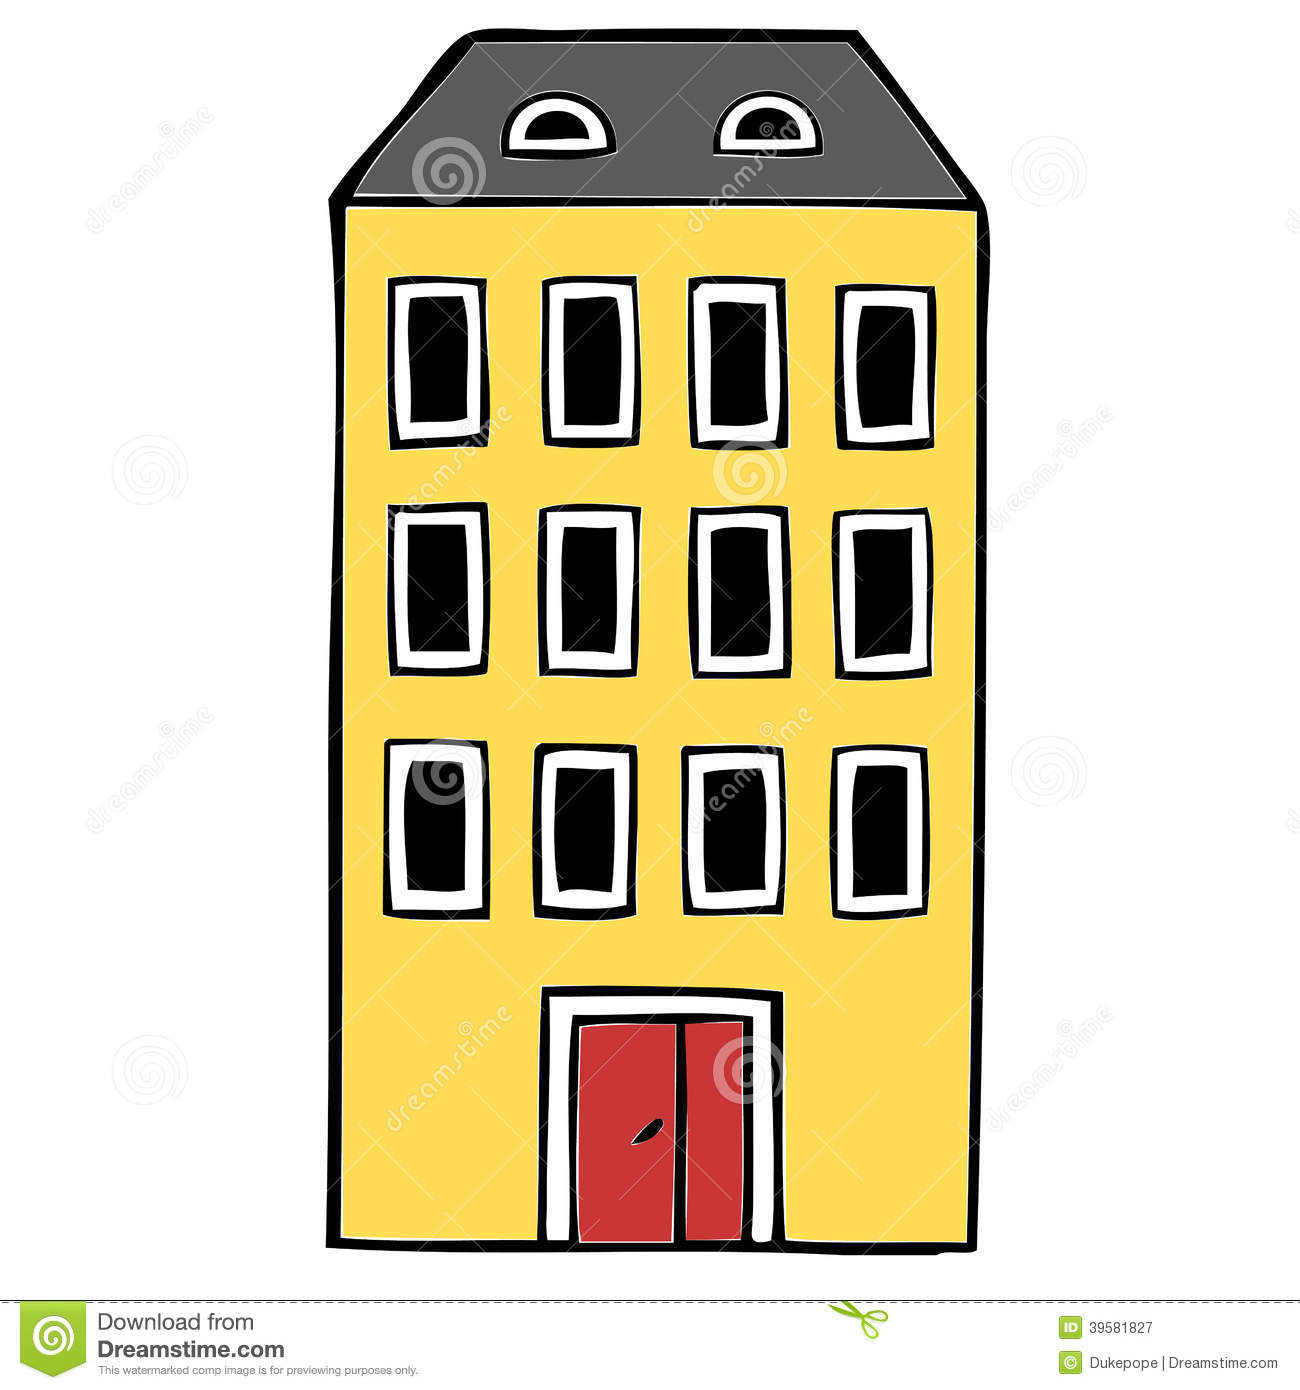 Clipart block of flats jpg black and white stock Apartment Block Stock Illustration - Image: 39581827 jpg black and white stock